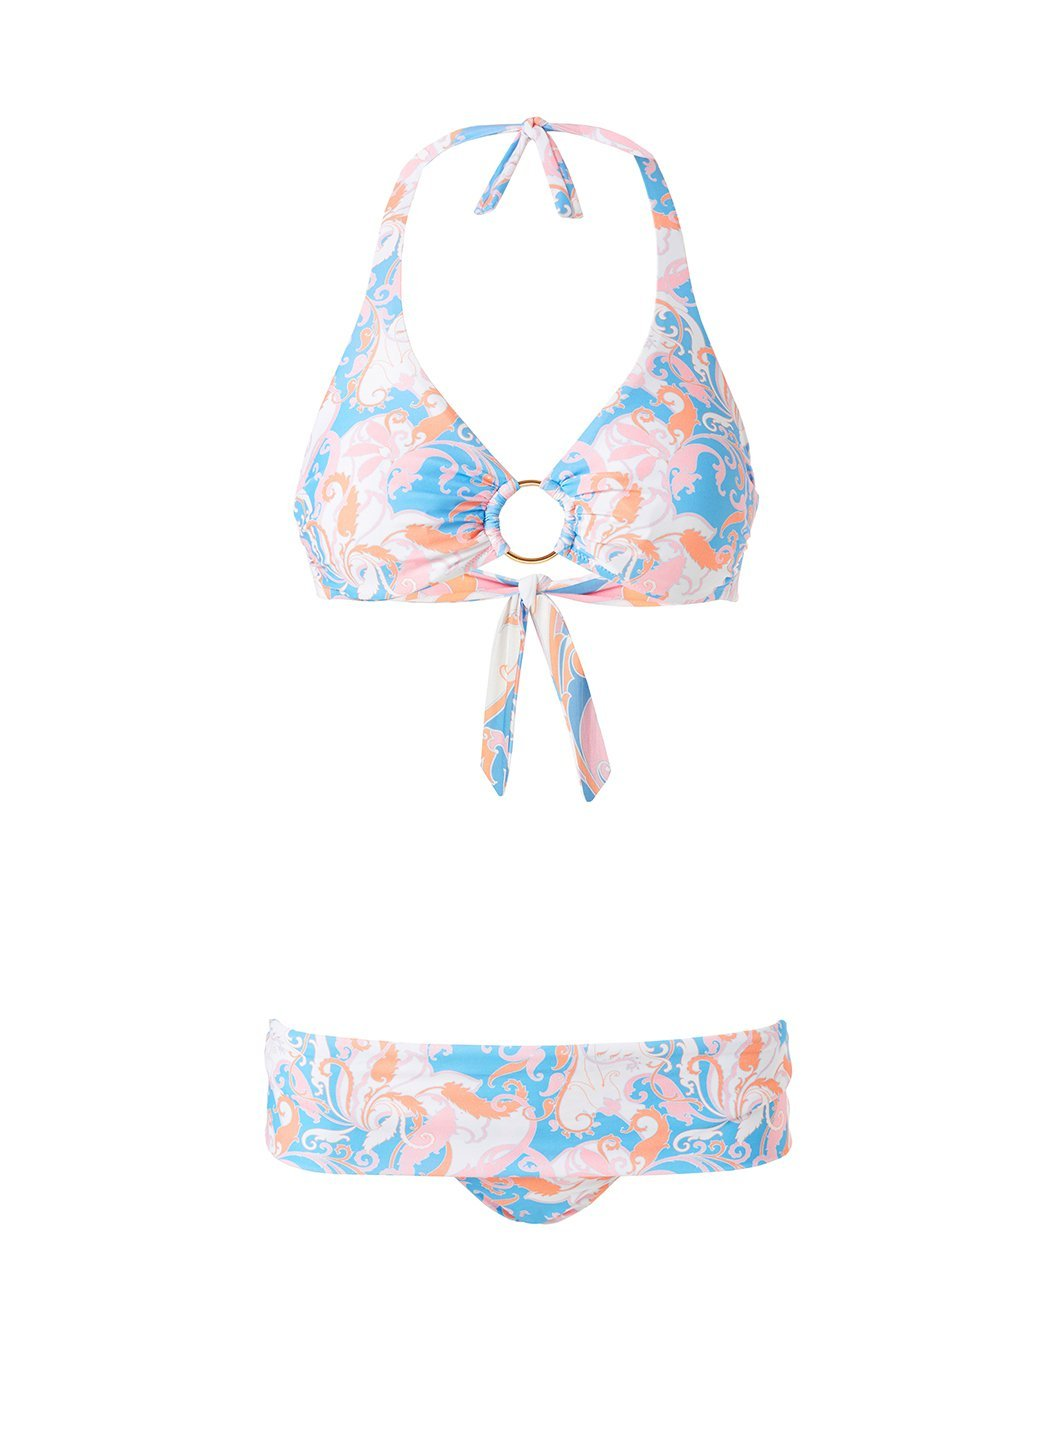 Brussels Baroque Blush Bikini Bottom